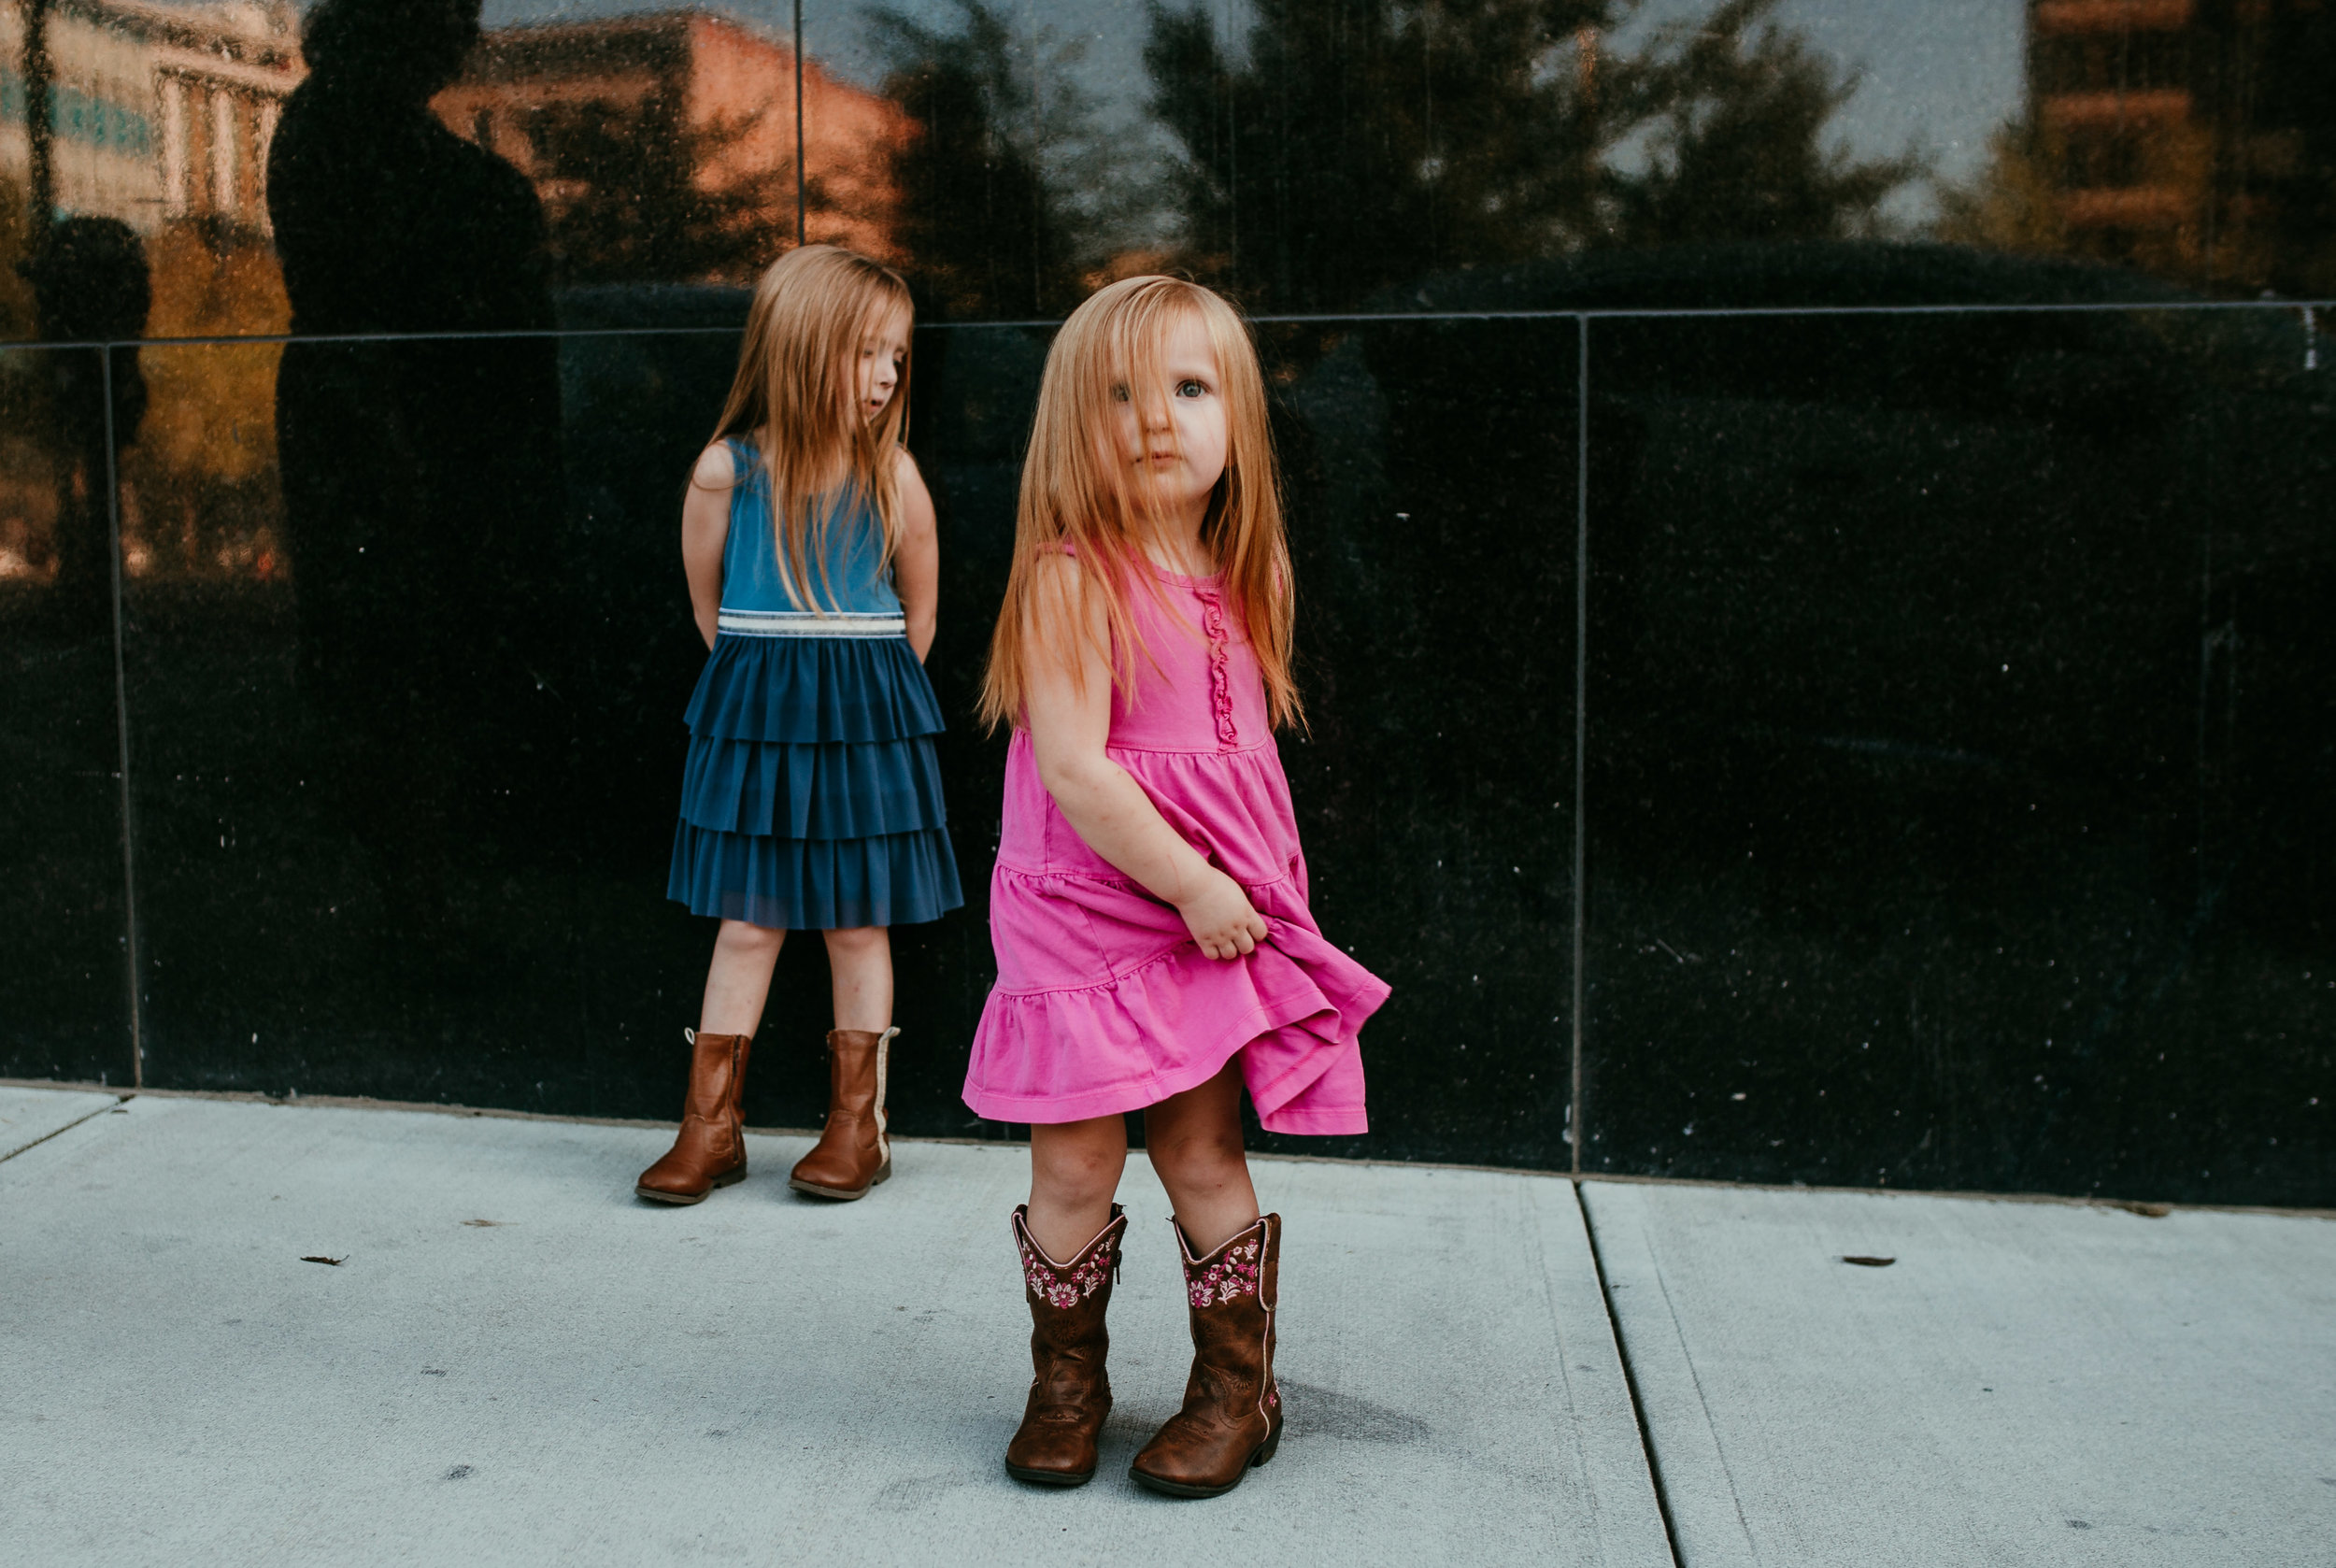 sweet little girls dancing on the street in Downton durham family session | Hanna Hill photography | Raleigh birth and family photographer